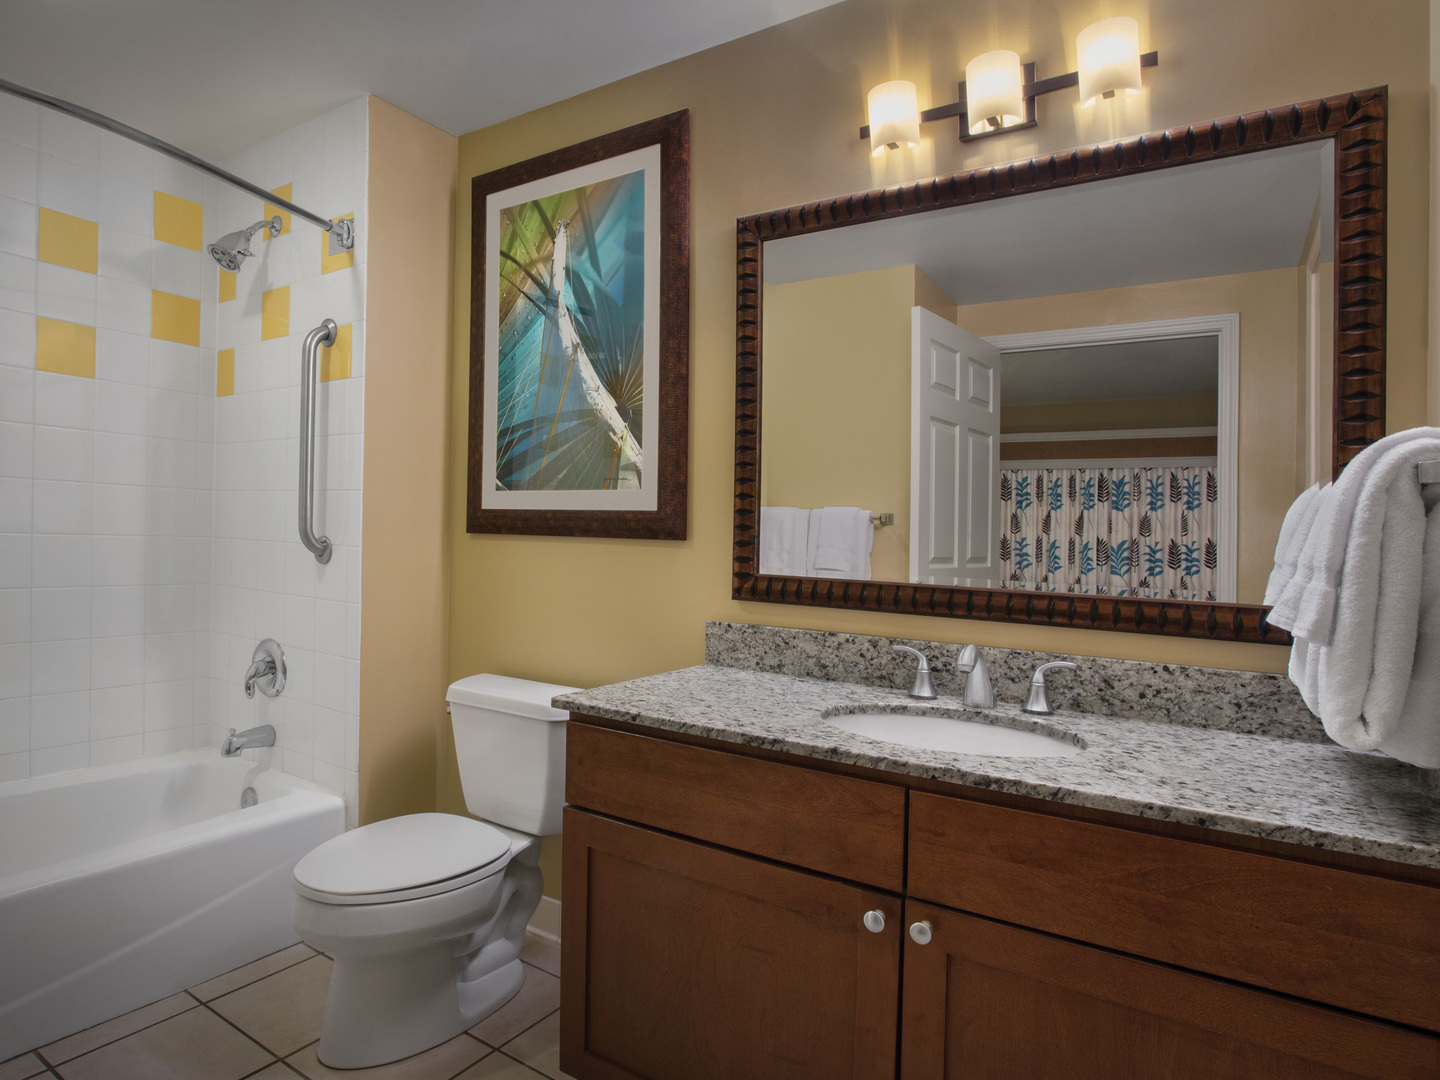 Marriott's Legends Edge at Bay Point Villa Guest Bathroom. Marriott's Legends Edge at Bay Point is located in Panama City, Florida United States.